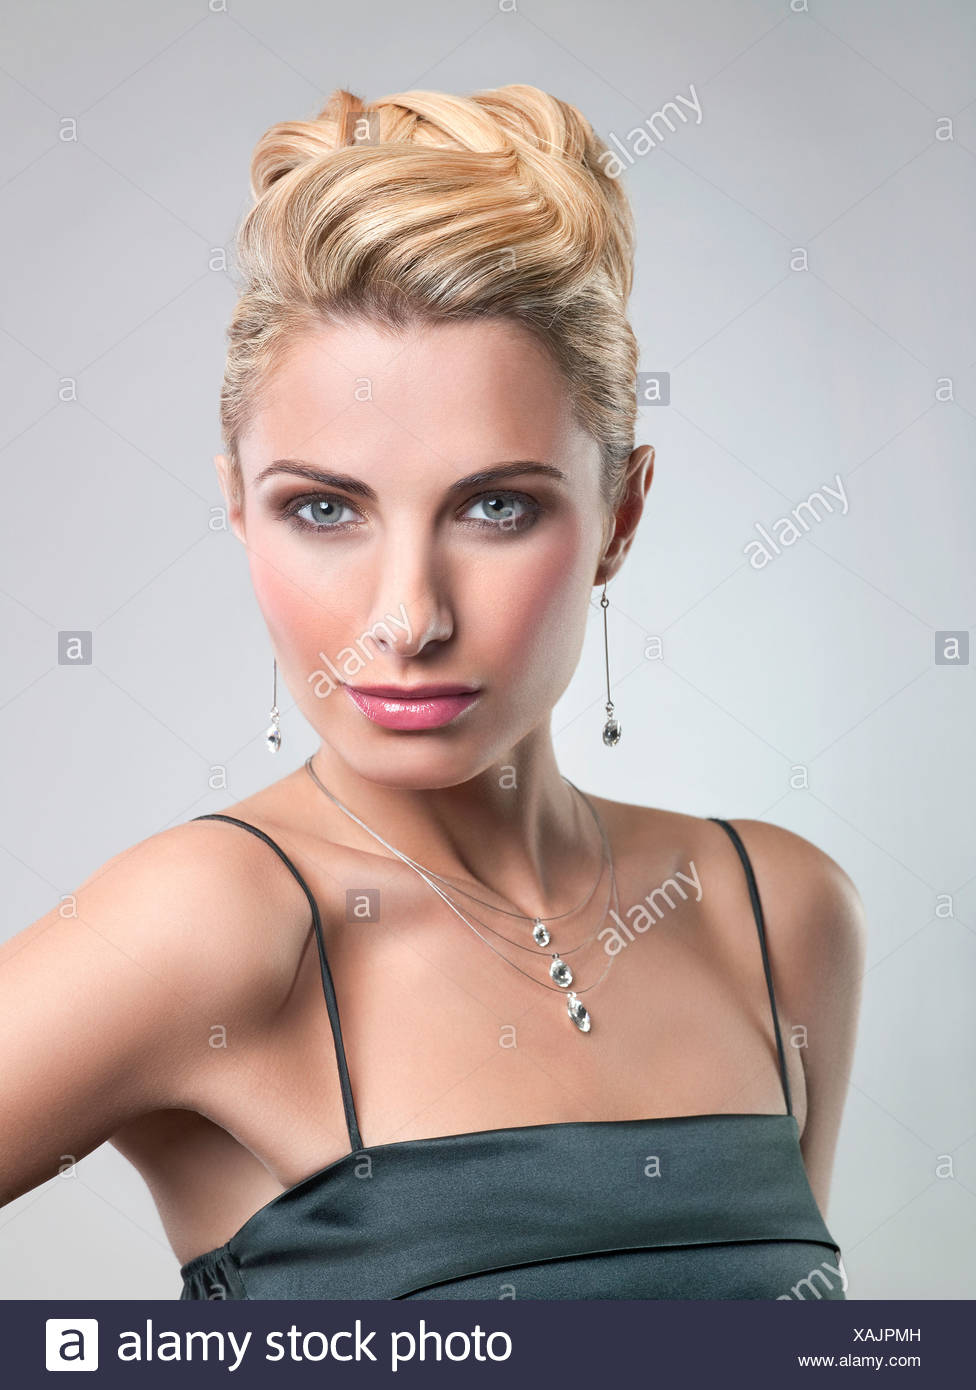 Young woman in formalwear looking at camera - Stock Image